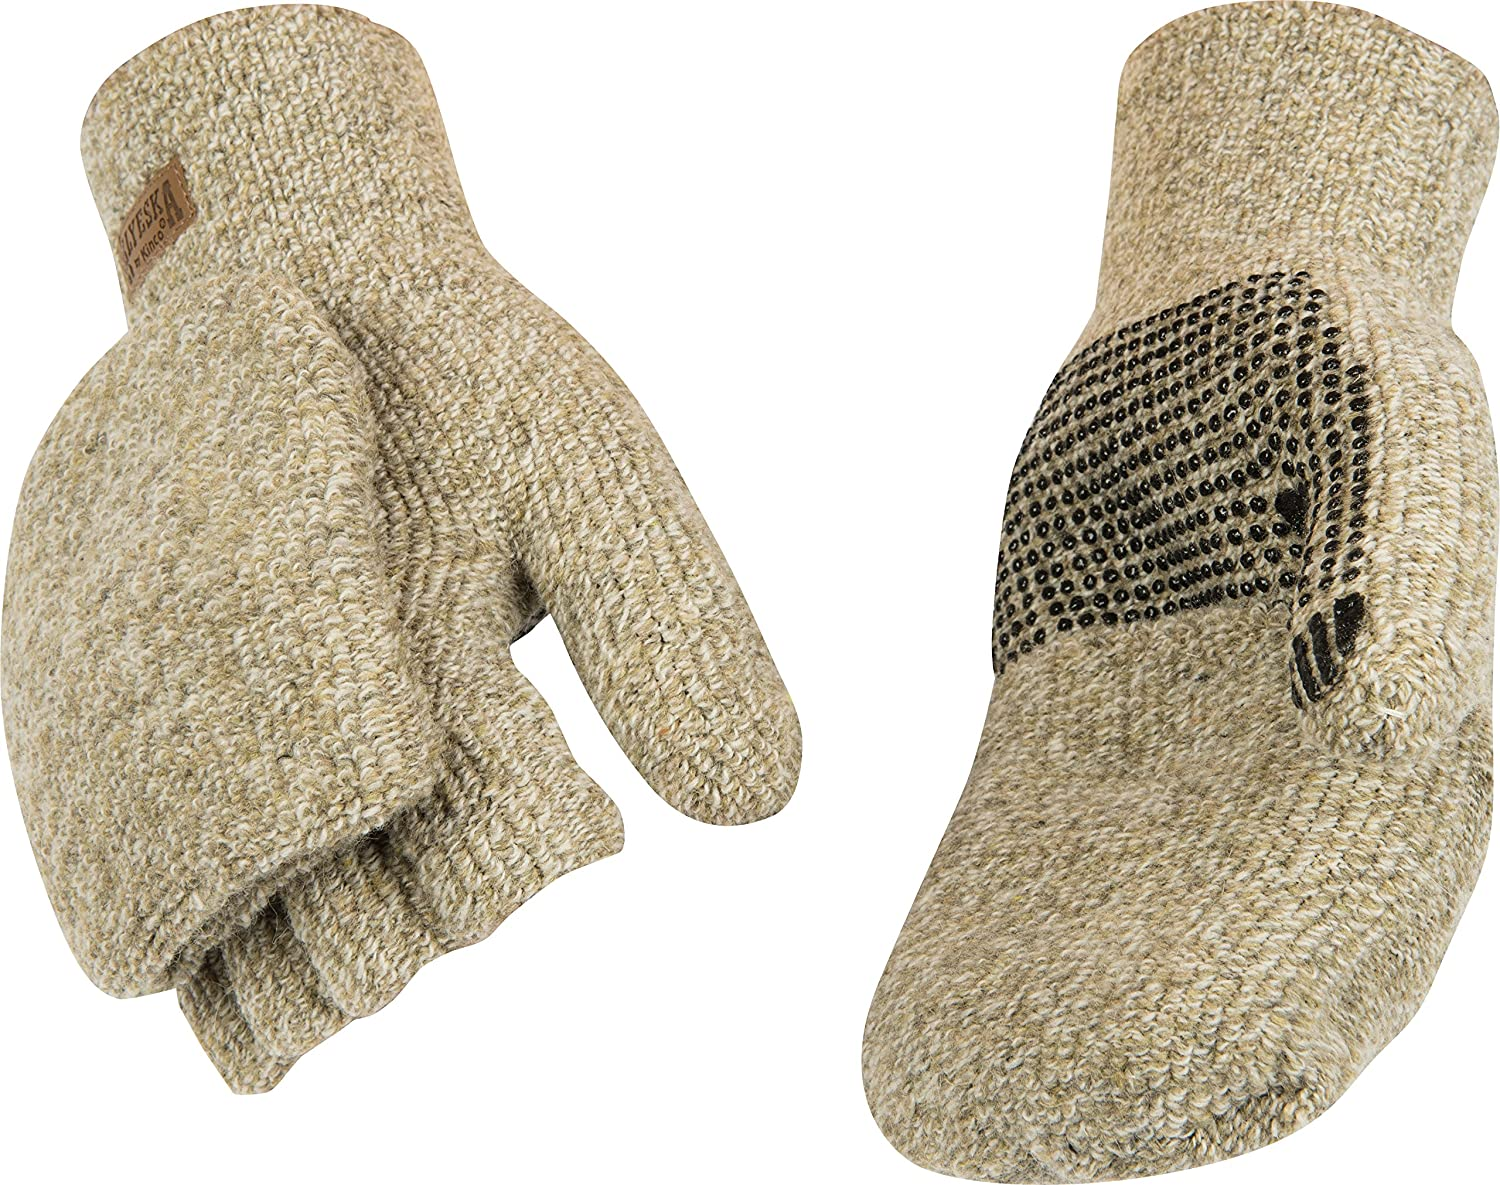 Kinco 5210-L Blended Yarn of 45% Wool & 55% Acrylic PVC Dots on Palm, Concealed Magnet Keeps Pocket Flap In Place, Acrylic Thermal Lining, Size: L